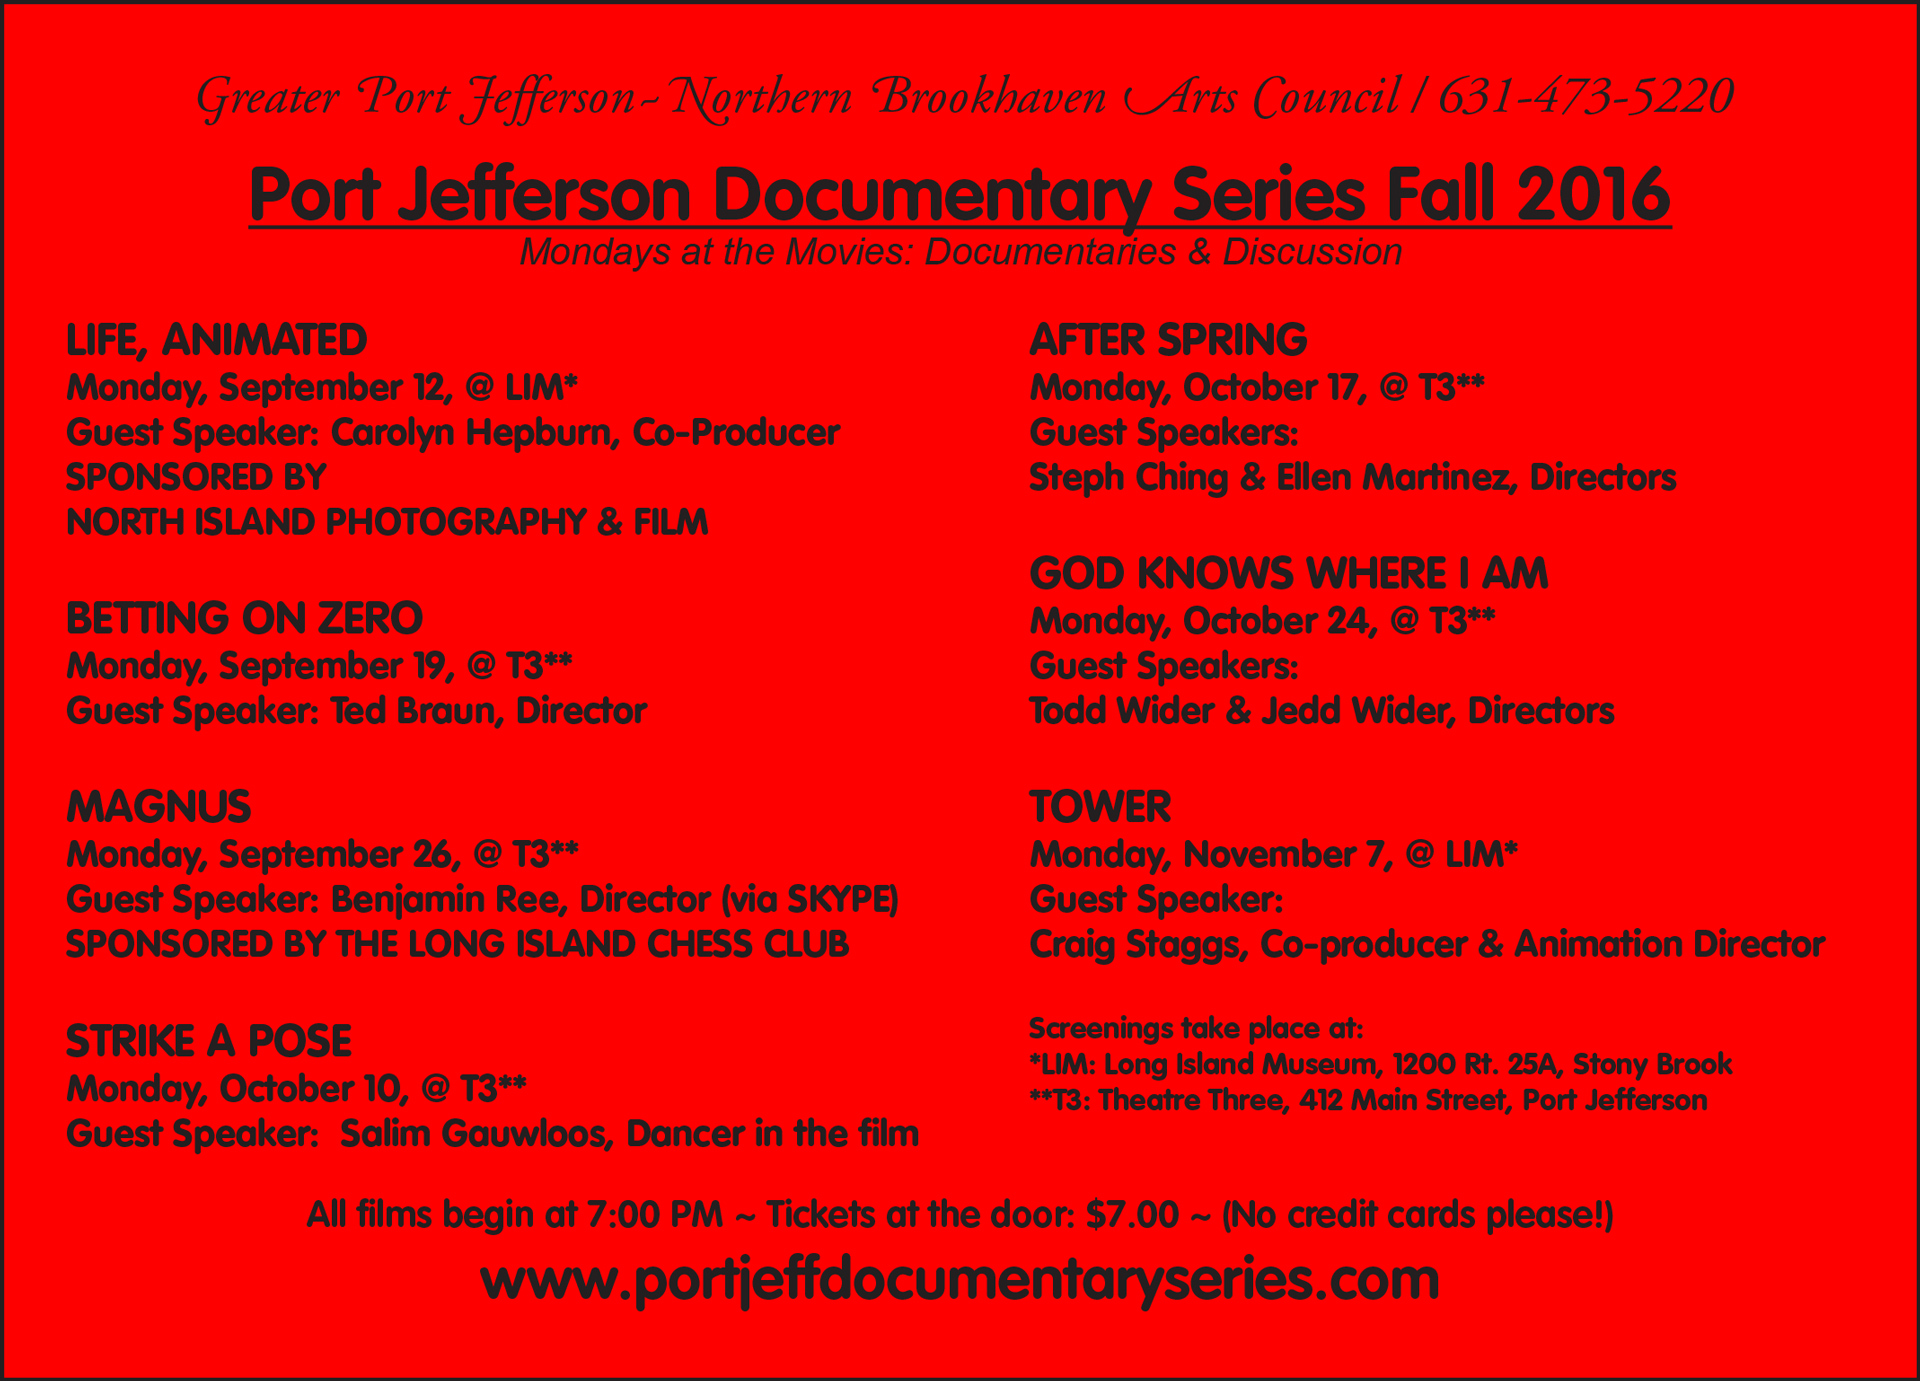 Fall 2016 Red Card port jeff documentary series